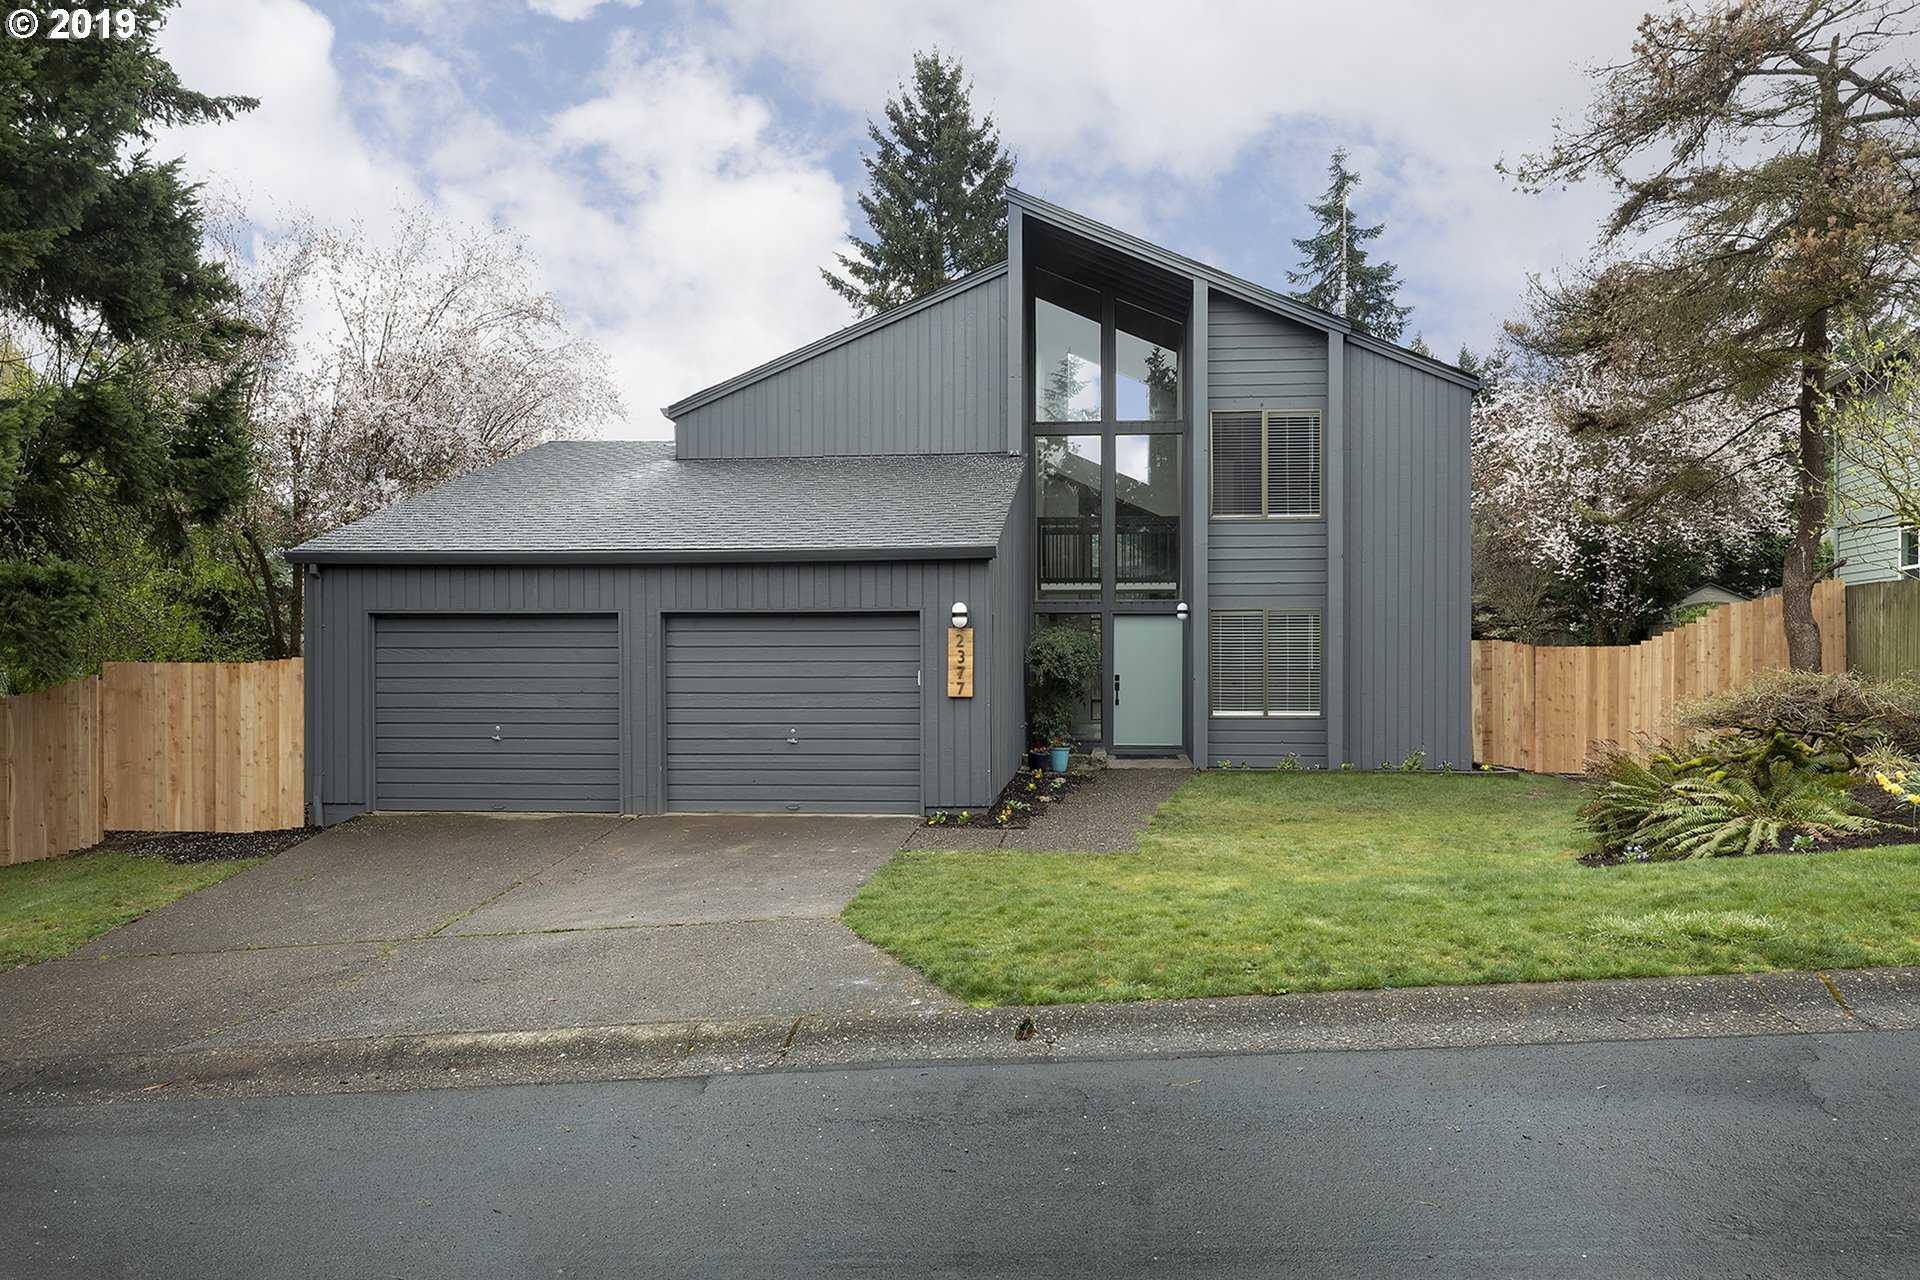 $579,900 - 4Br/3Ba -  for Sale in West Linn